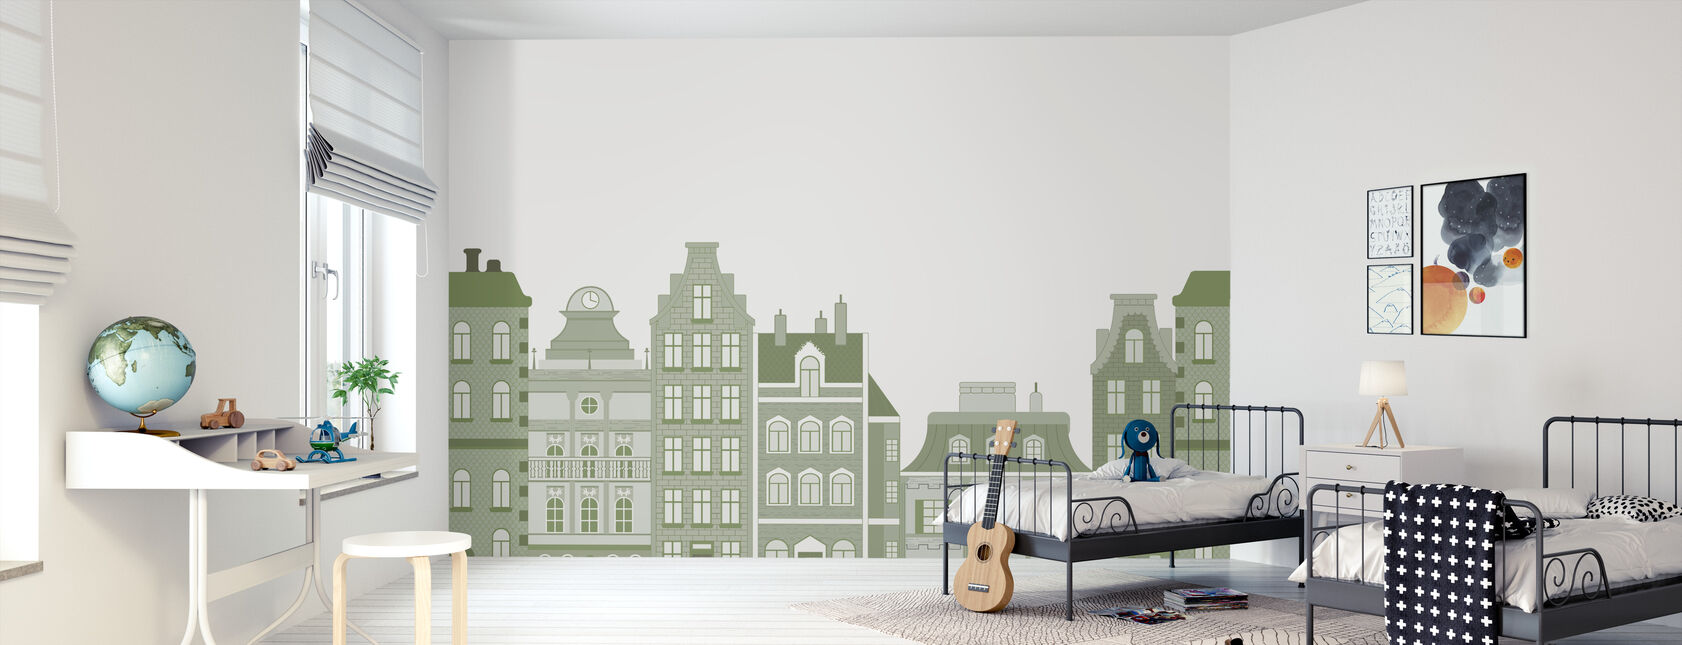 Old Town Green - Wallpaper - Kids Room